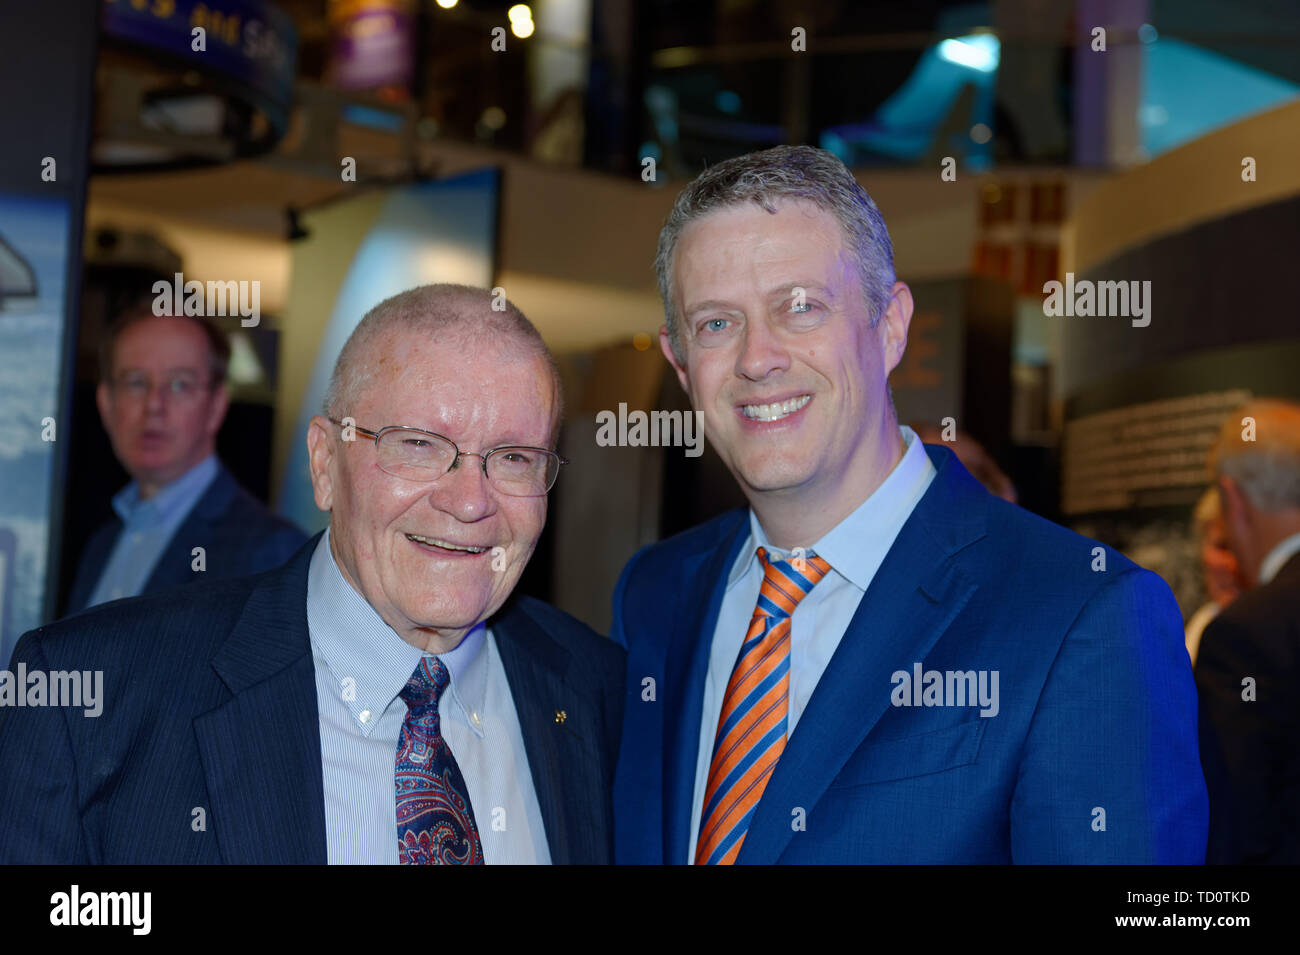 Garden City, New York, USA. 6th June, 2019. L-R, Apollo 13 astronaut FRED HAISE and Cradle of Aviation Museum Board of Directors member TODD RICHMAN pose for photo during Apollo at 50 Anniversary Dinner, an Apollo astronaut tribute celebrating the Apollo 11 mission Moon landing. Credit: Ann Parry/ZUMA Wire/Alamy Live News - Stock Image